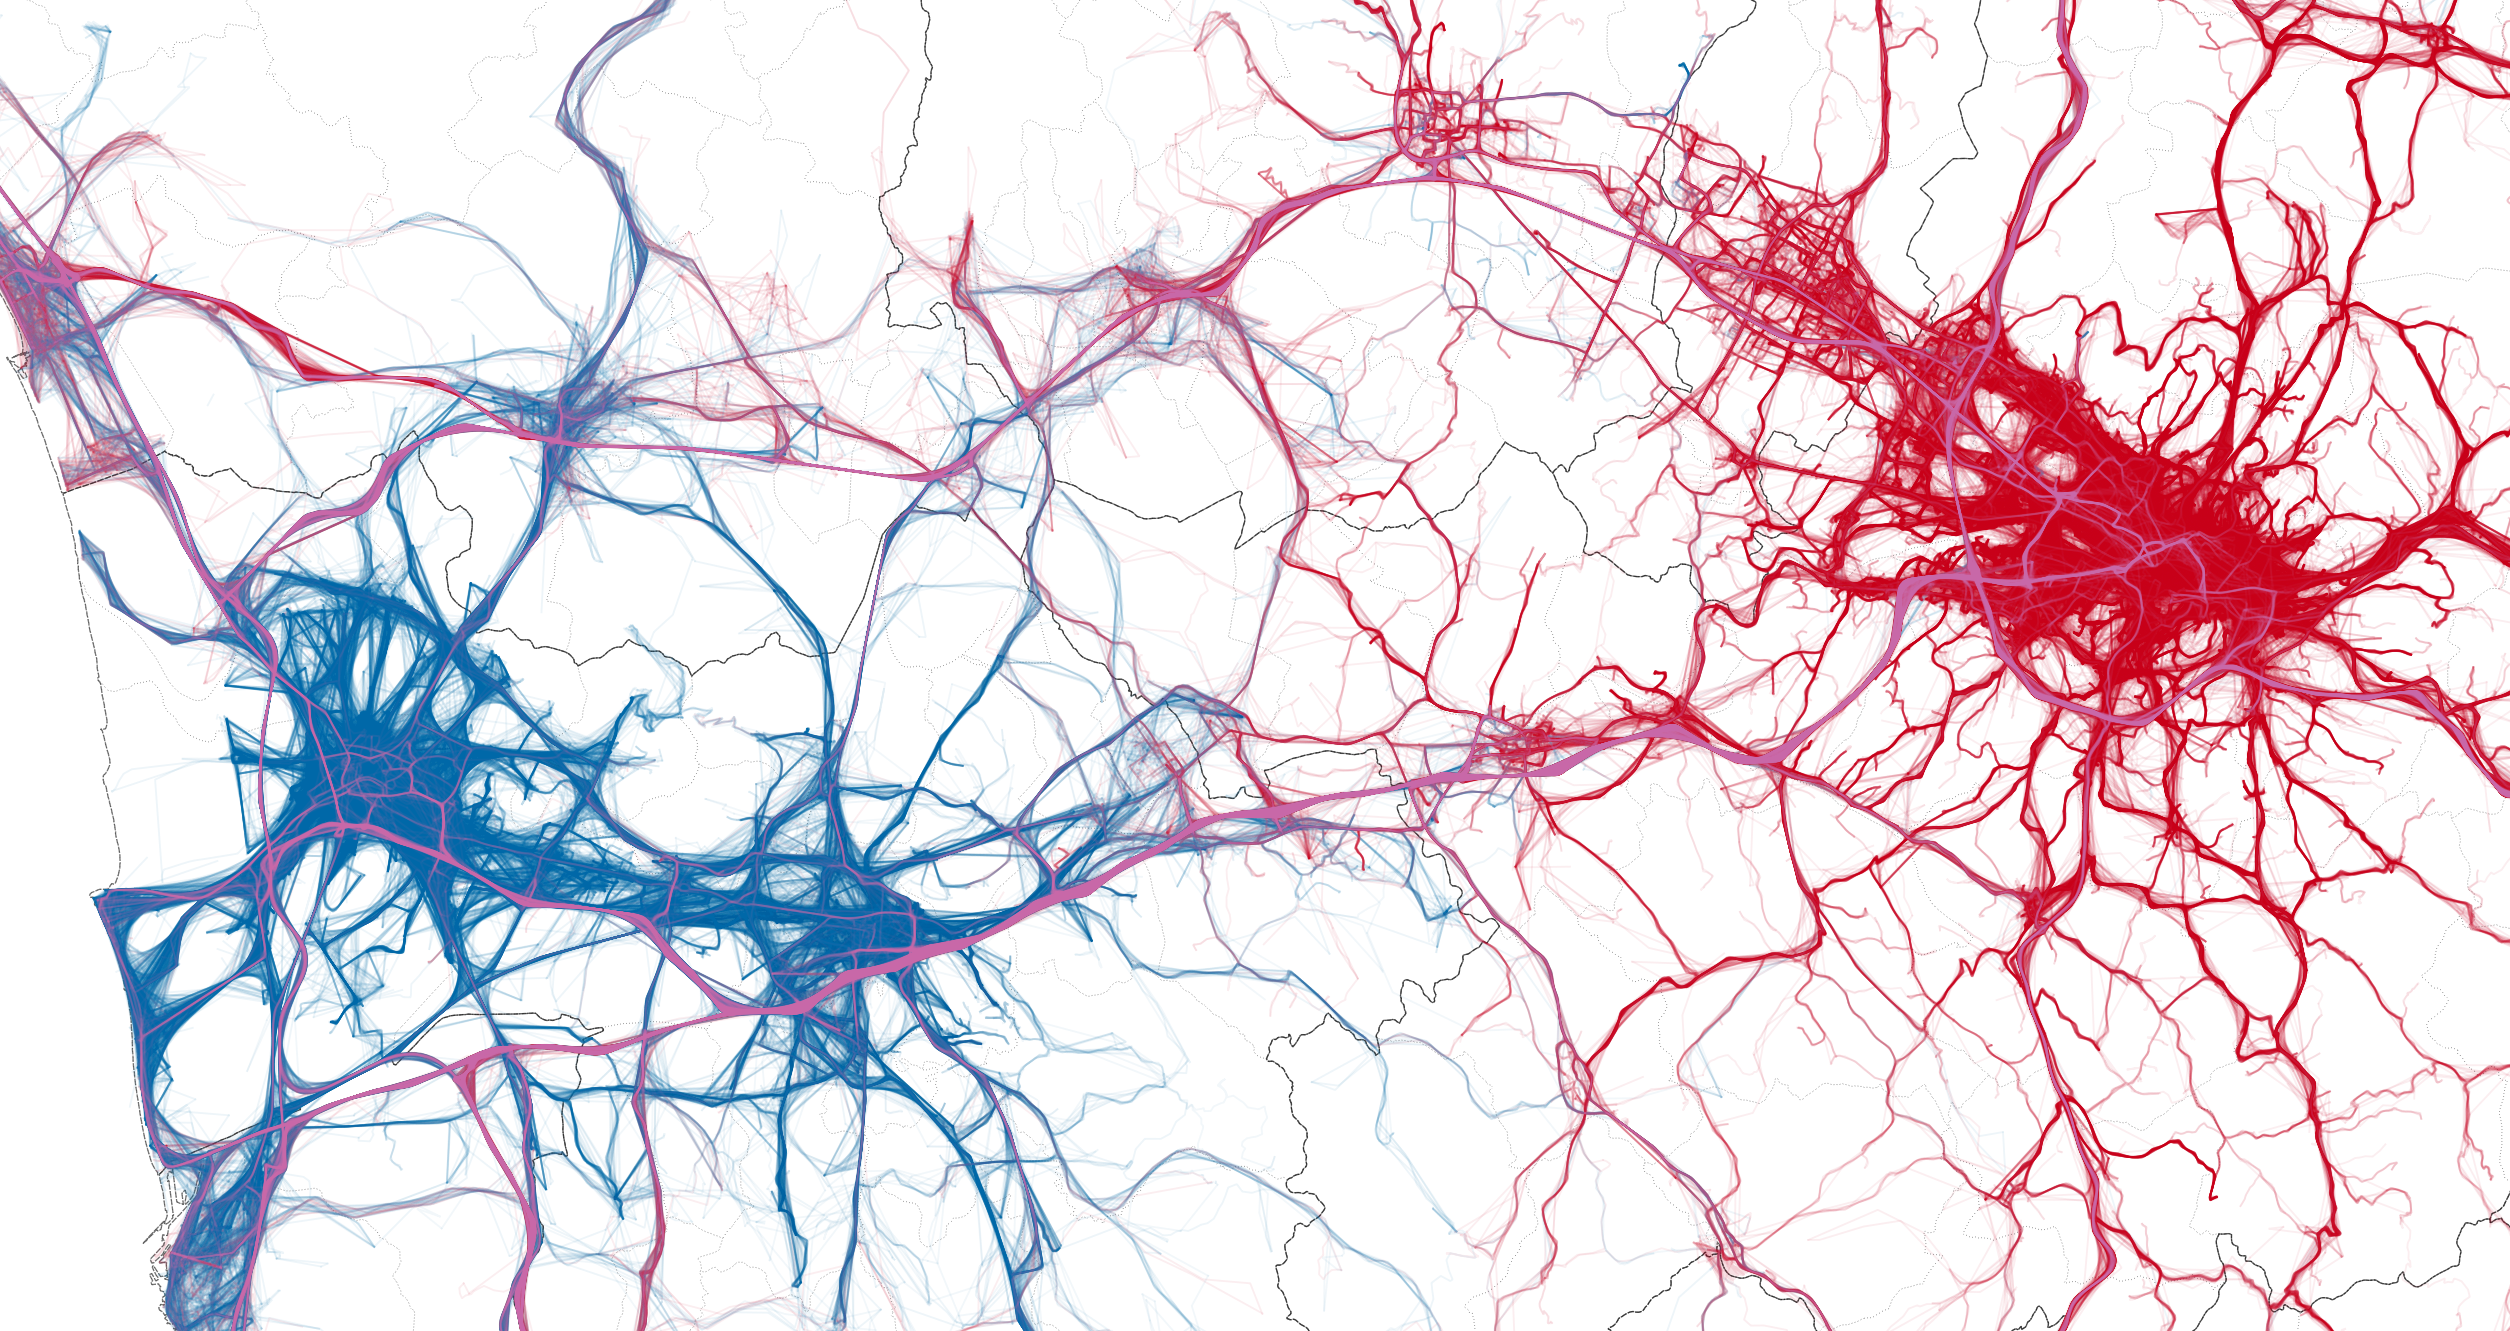 A fragment of the GPS trajectories used in our study, displaying trips originating in the metropolitan areas of Pisa (in blue) and Florence (red). This plain geo-referenced visualization of experimental data reveals the confrontation of two 'competing' metropolitan areas. It also demonstrates the ability of Big Data to portray social complexity.